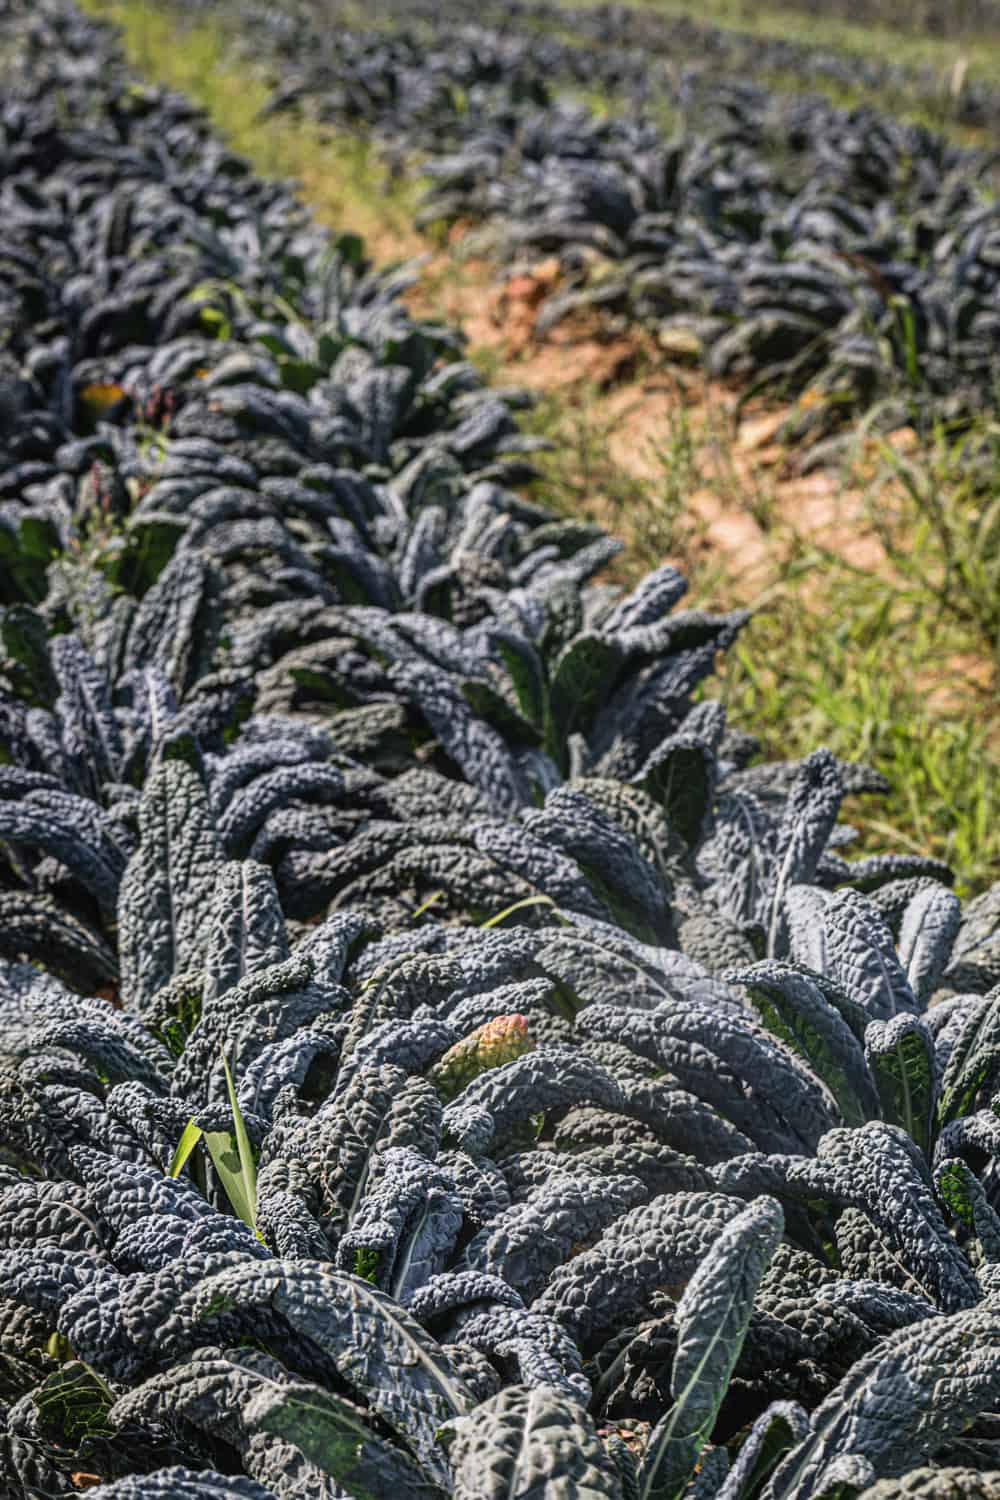 Rows of kale at Amber Waves Farm.